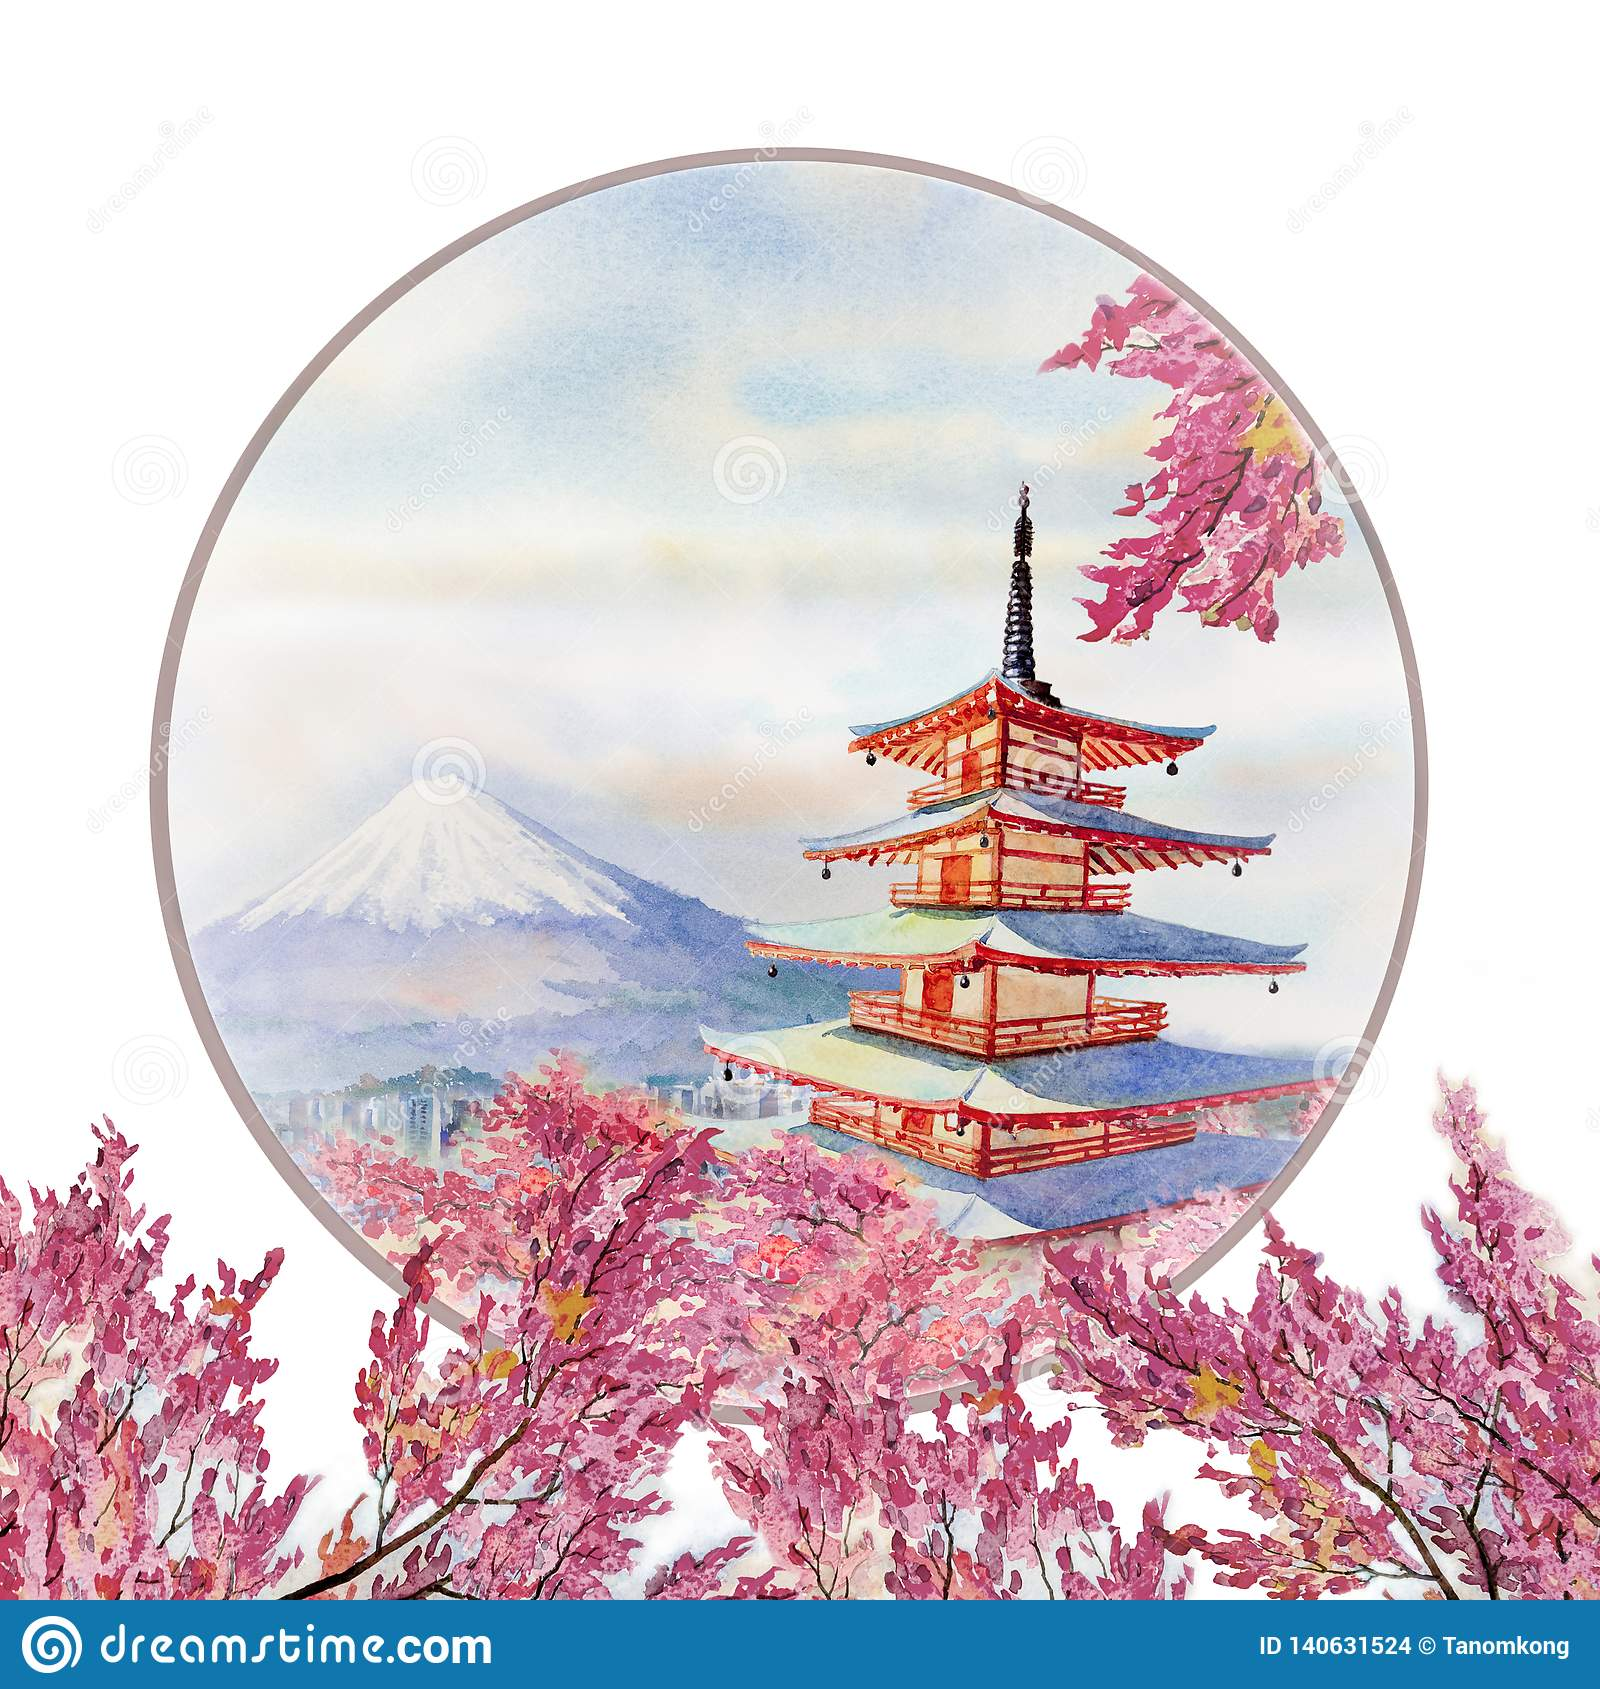 Watercolor Painting Spring With Landmarks In Japan Stock Illustration Illustration Of Mountain Attraction 140631524